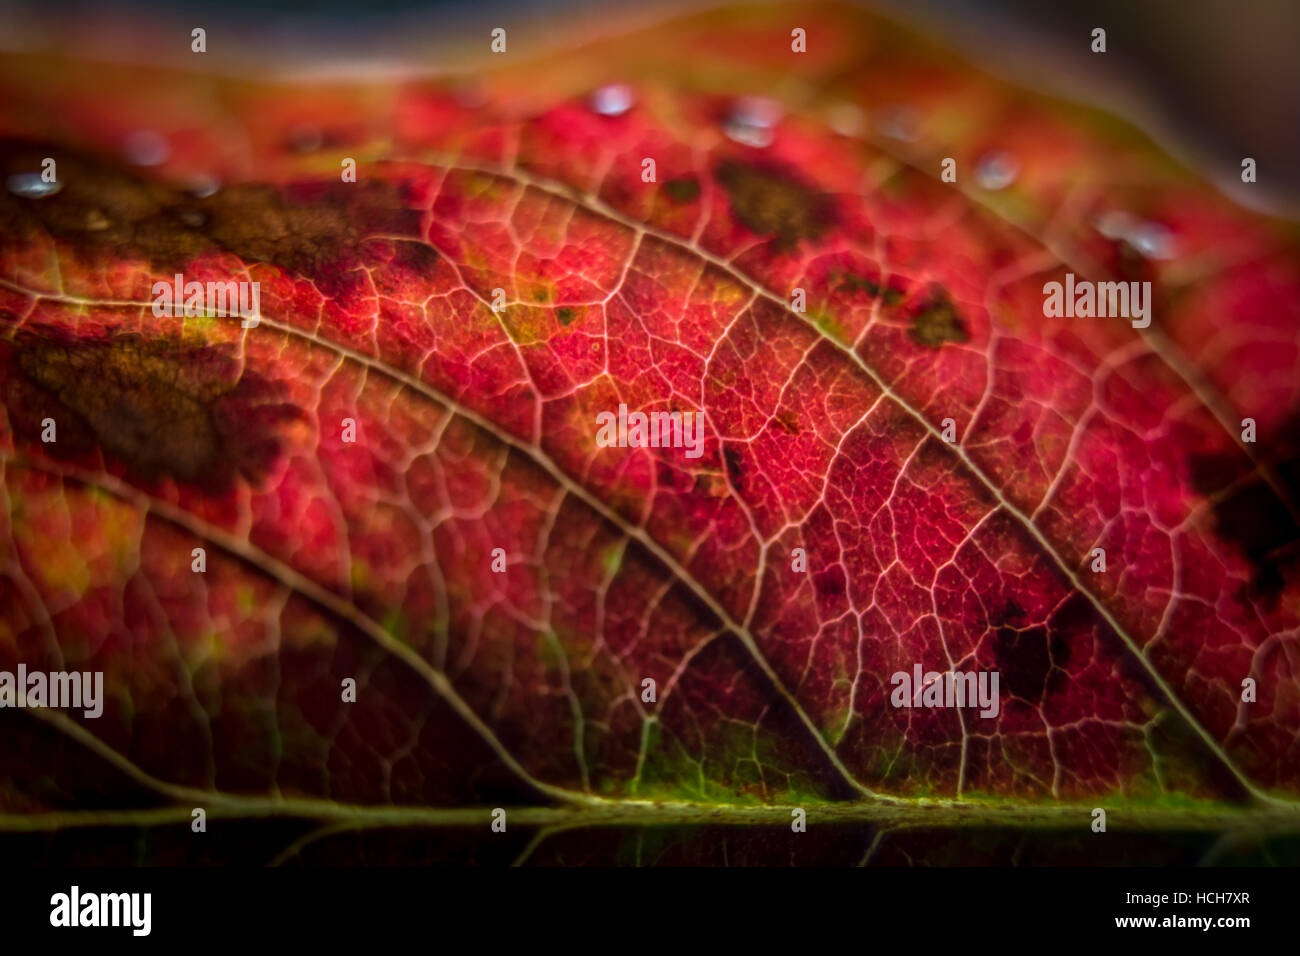 Close up of a backlit red autumn leaf showing veins - Stock Image